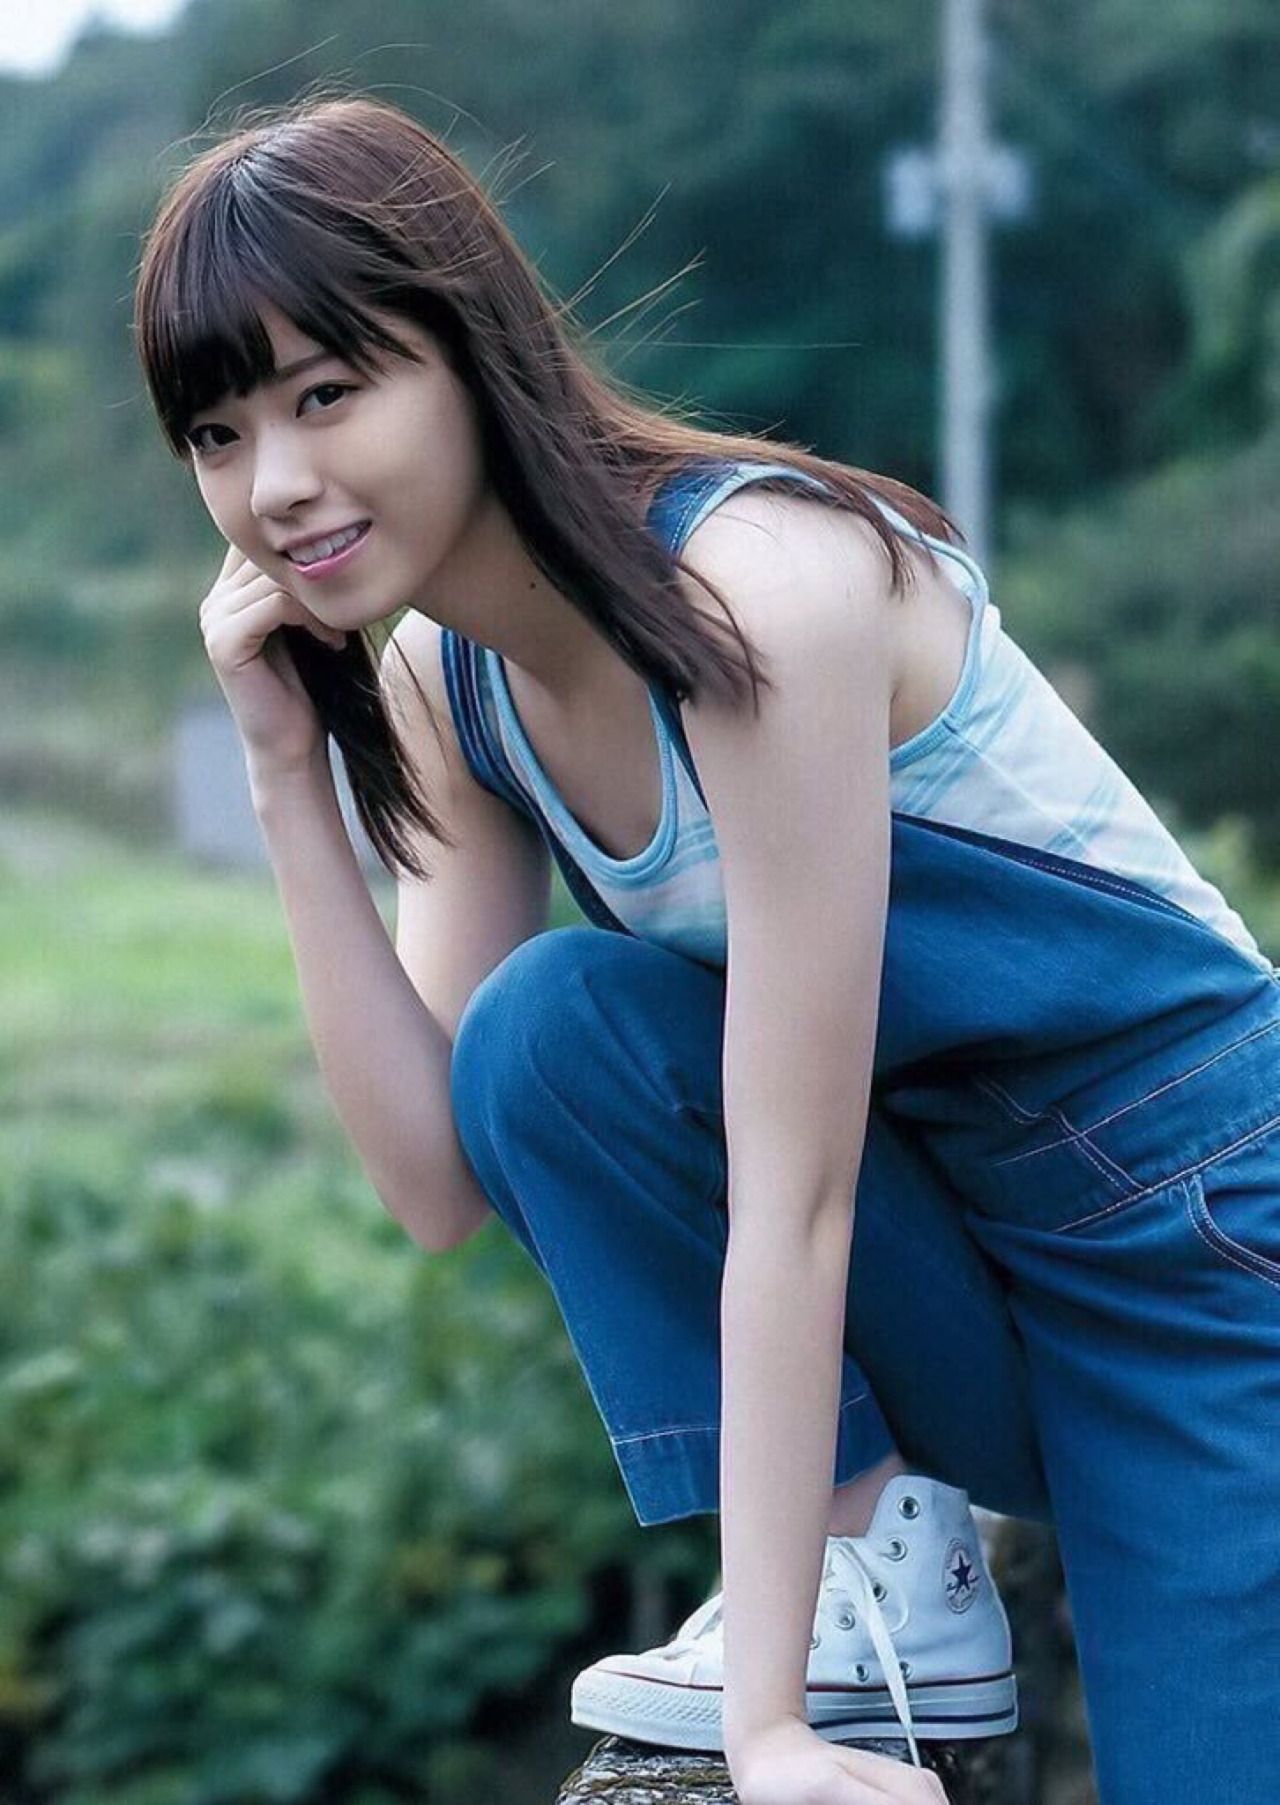 Japanese girl - Nanase Nishino